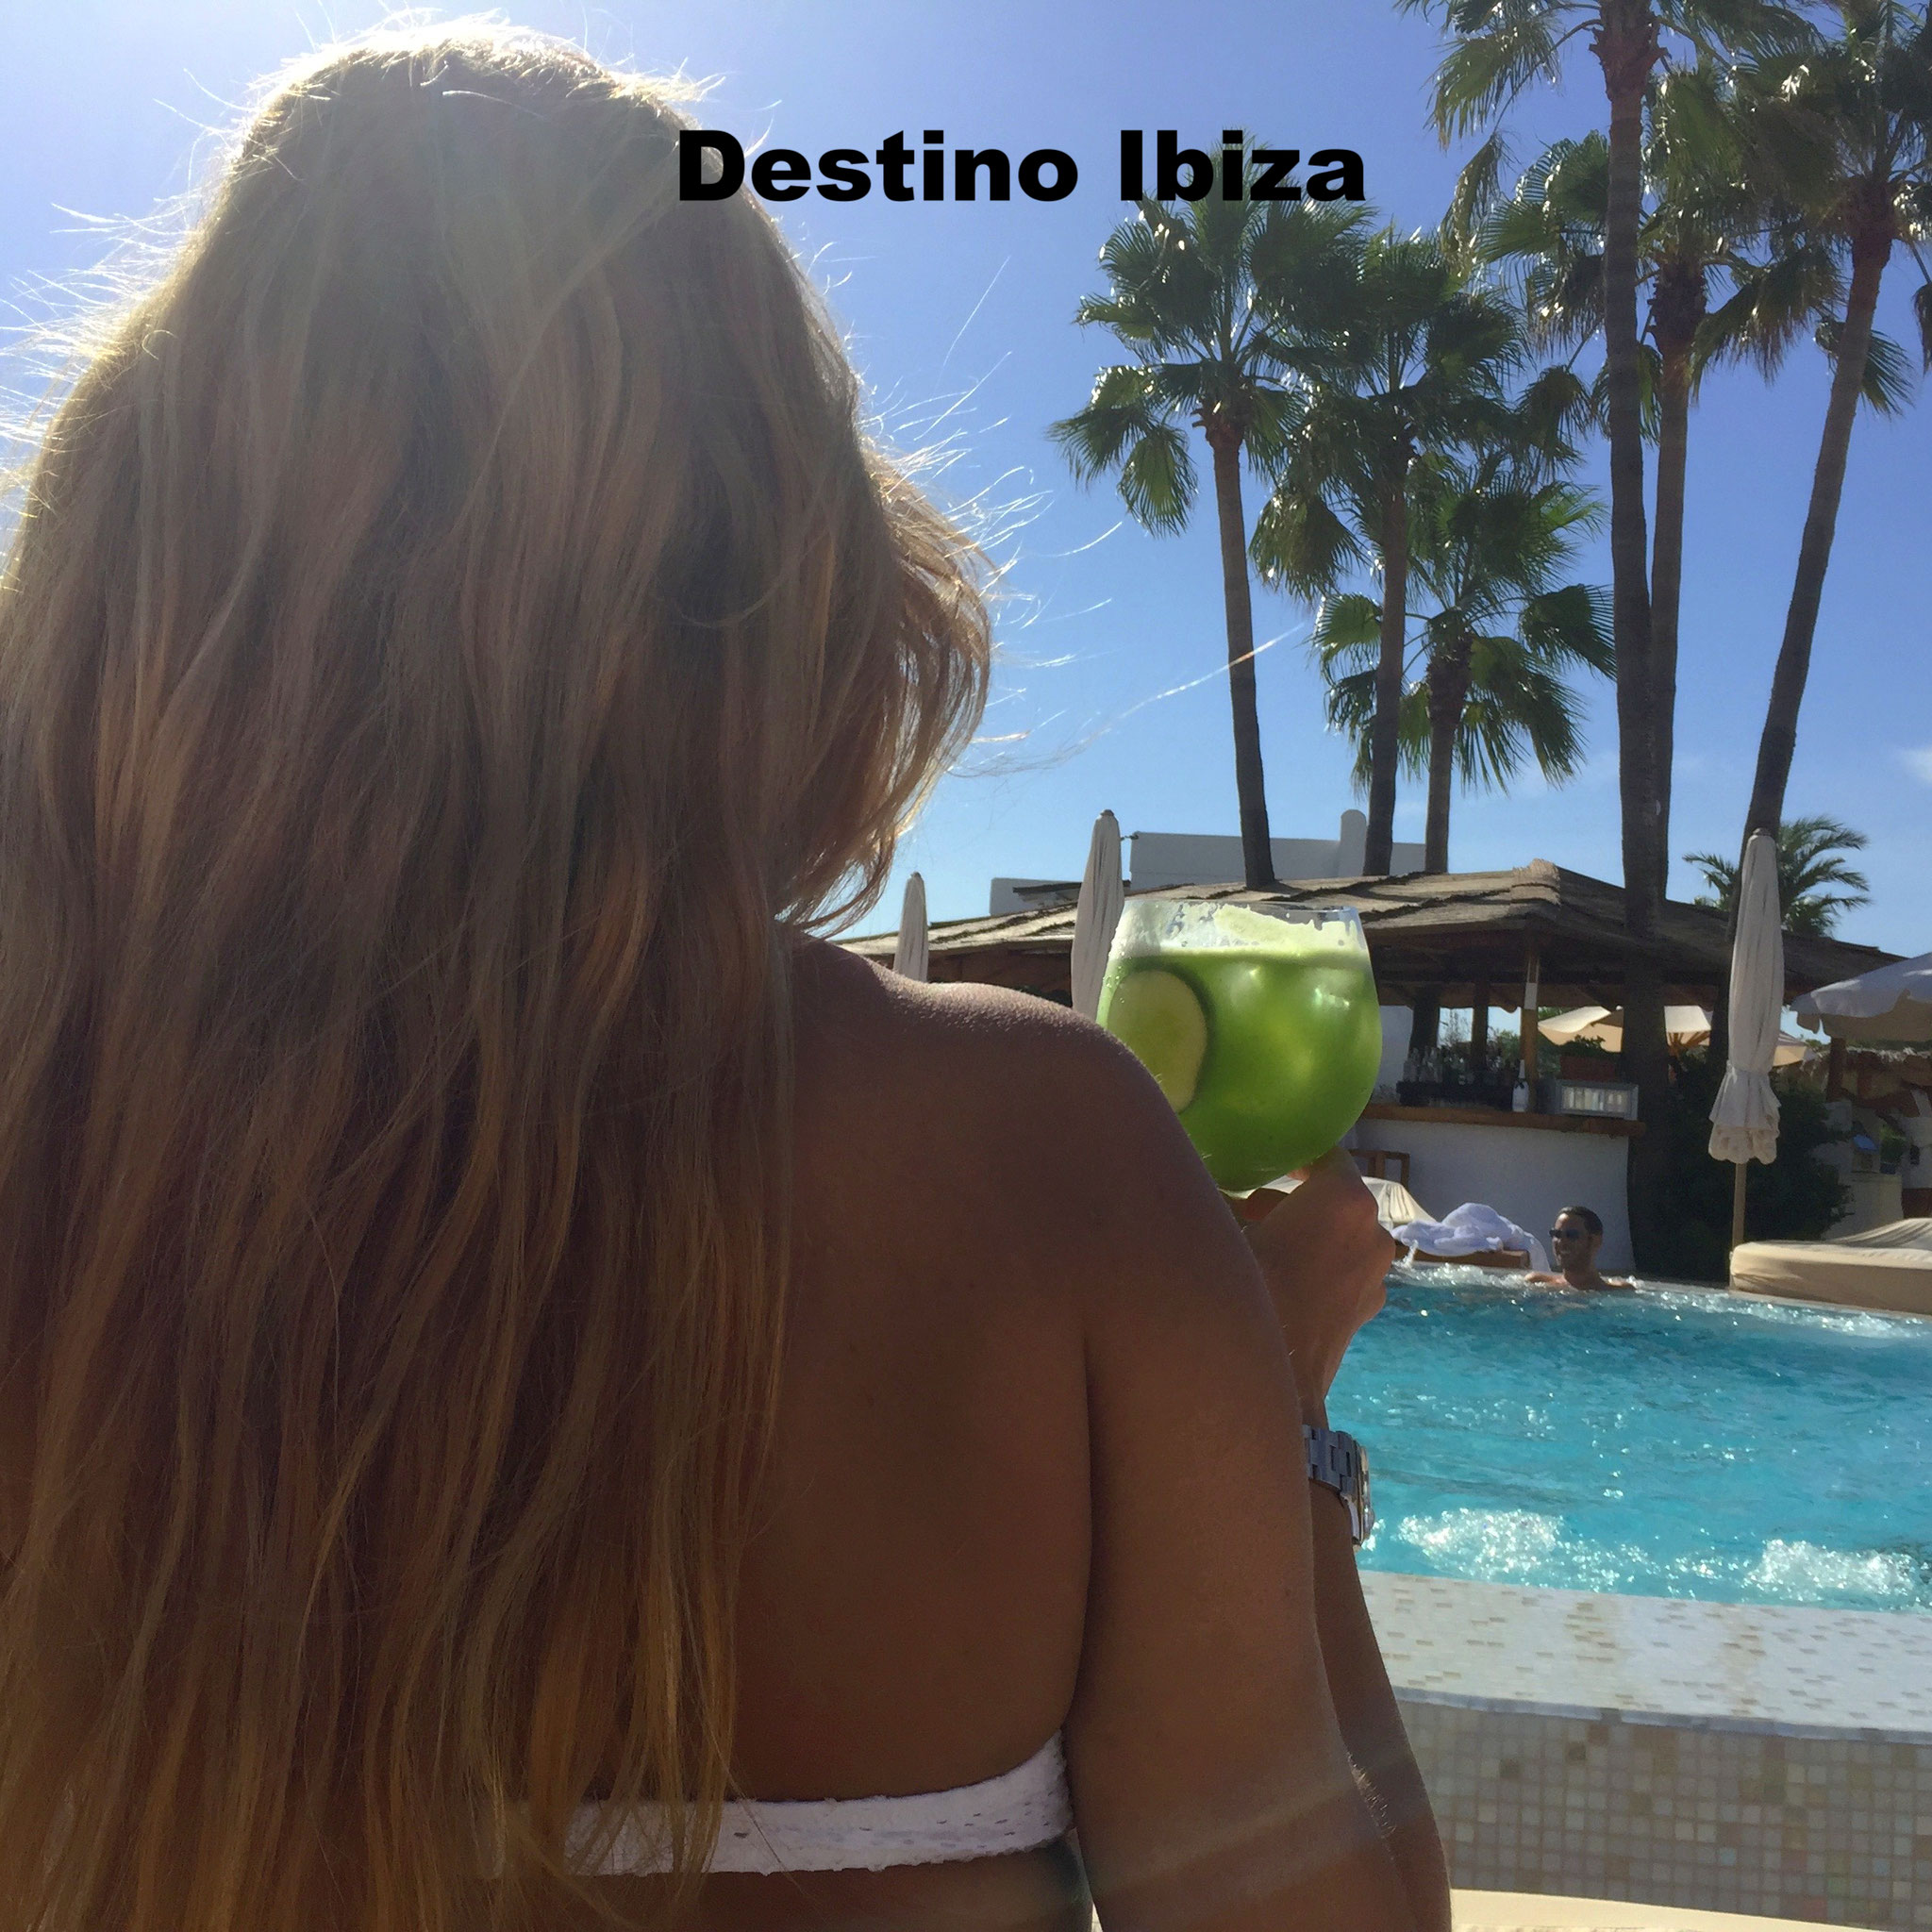 Sunset Drinks@Destino, Ibiza